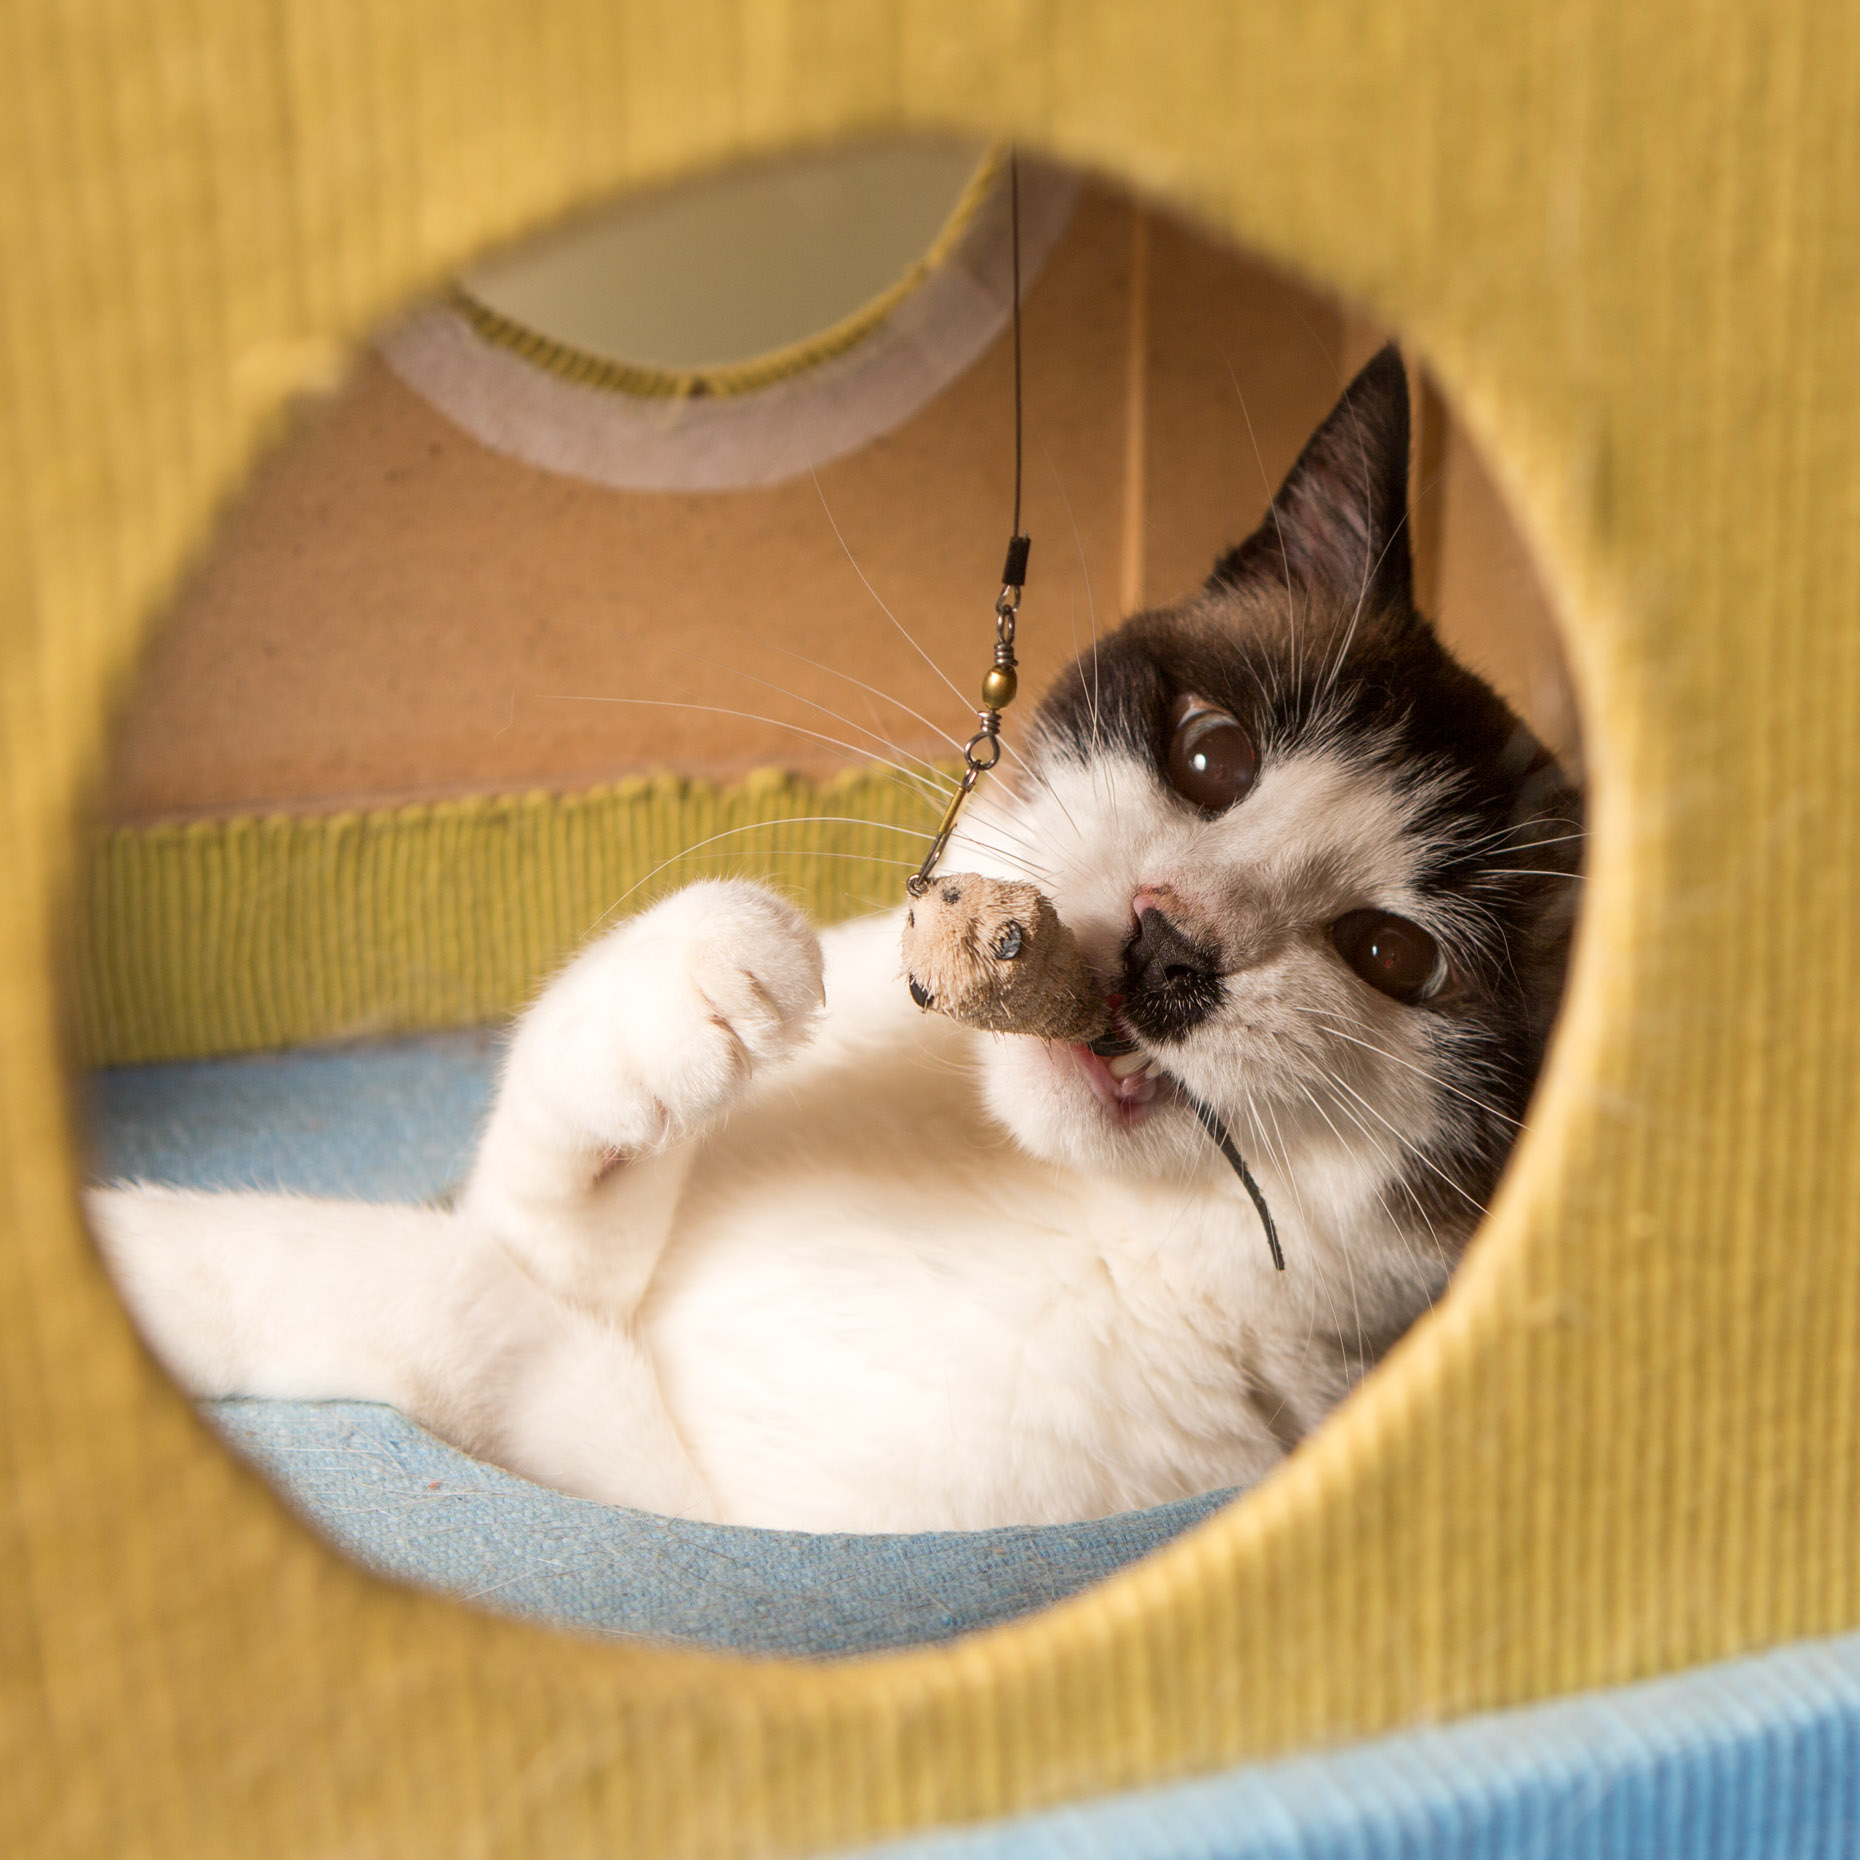 Pet Humor Photography | Cat Chewing Toy by Mark Rogers